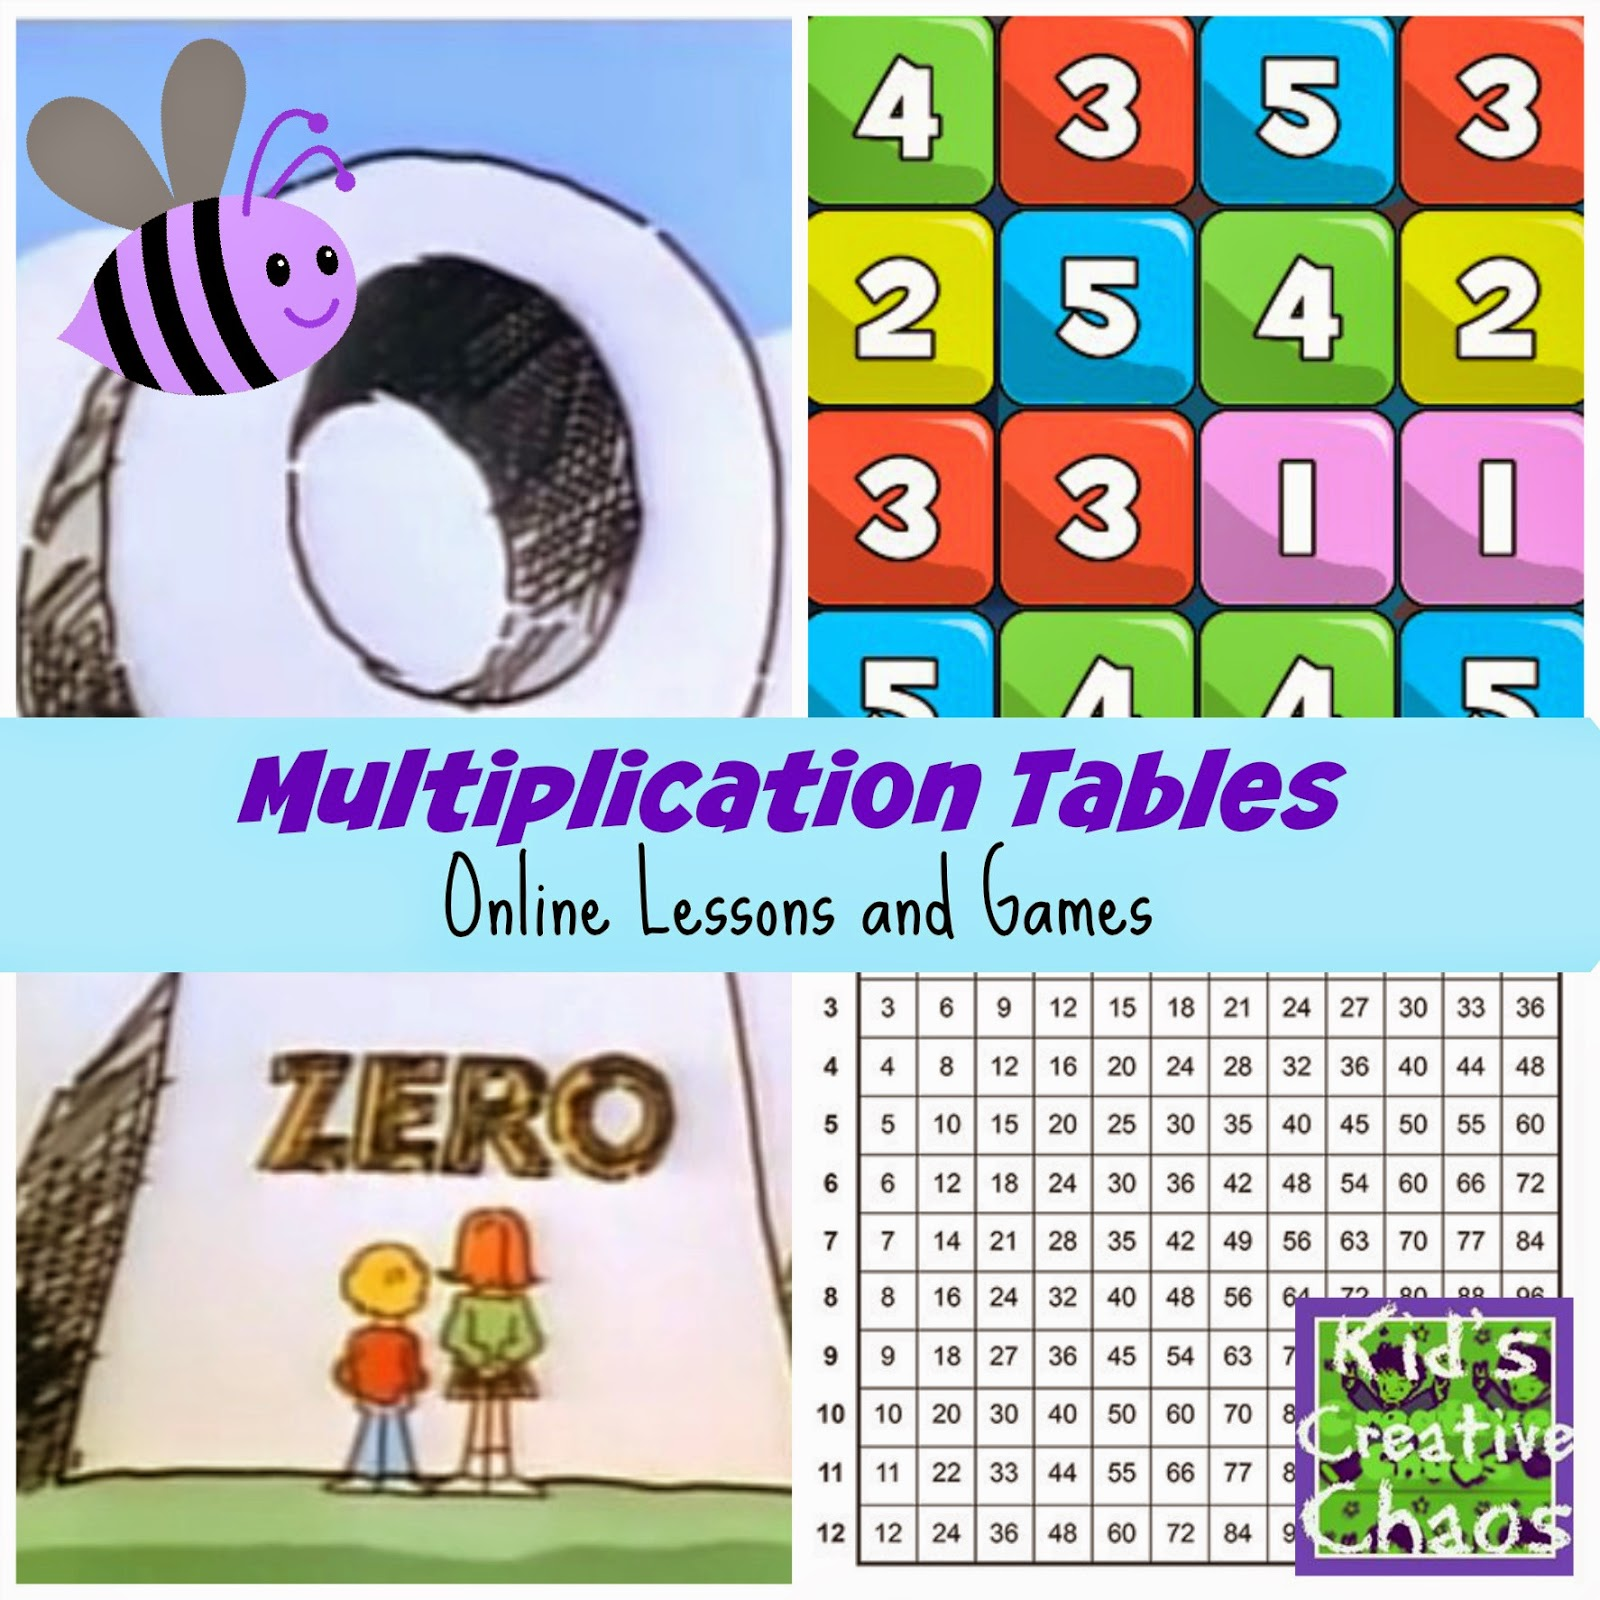 Learn Multiplication Tables Online Free Homeschooling Homeschool